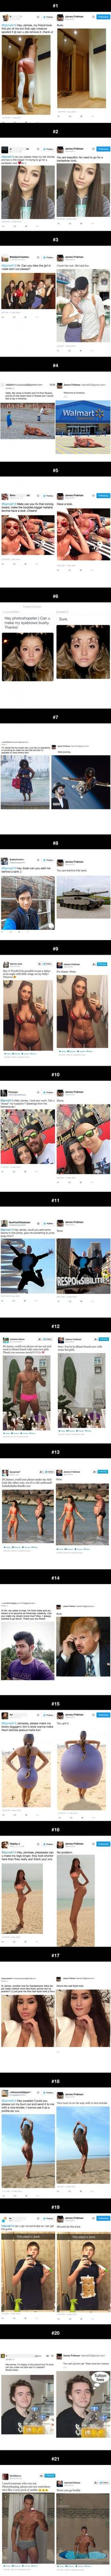 21 Reason Why You Should (Never) Ask This Guy To Photoshop Your Photos (By James Fridman)